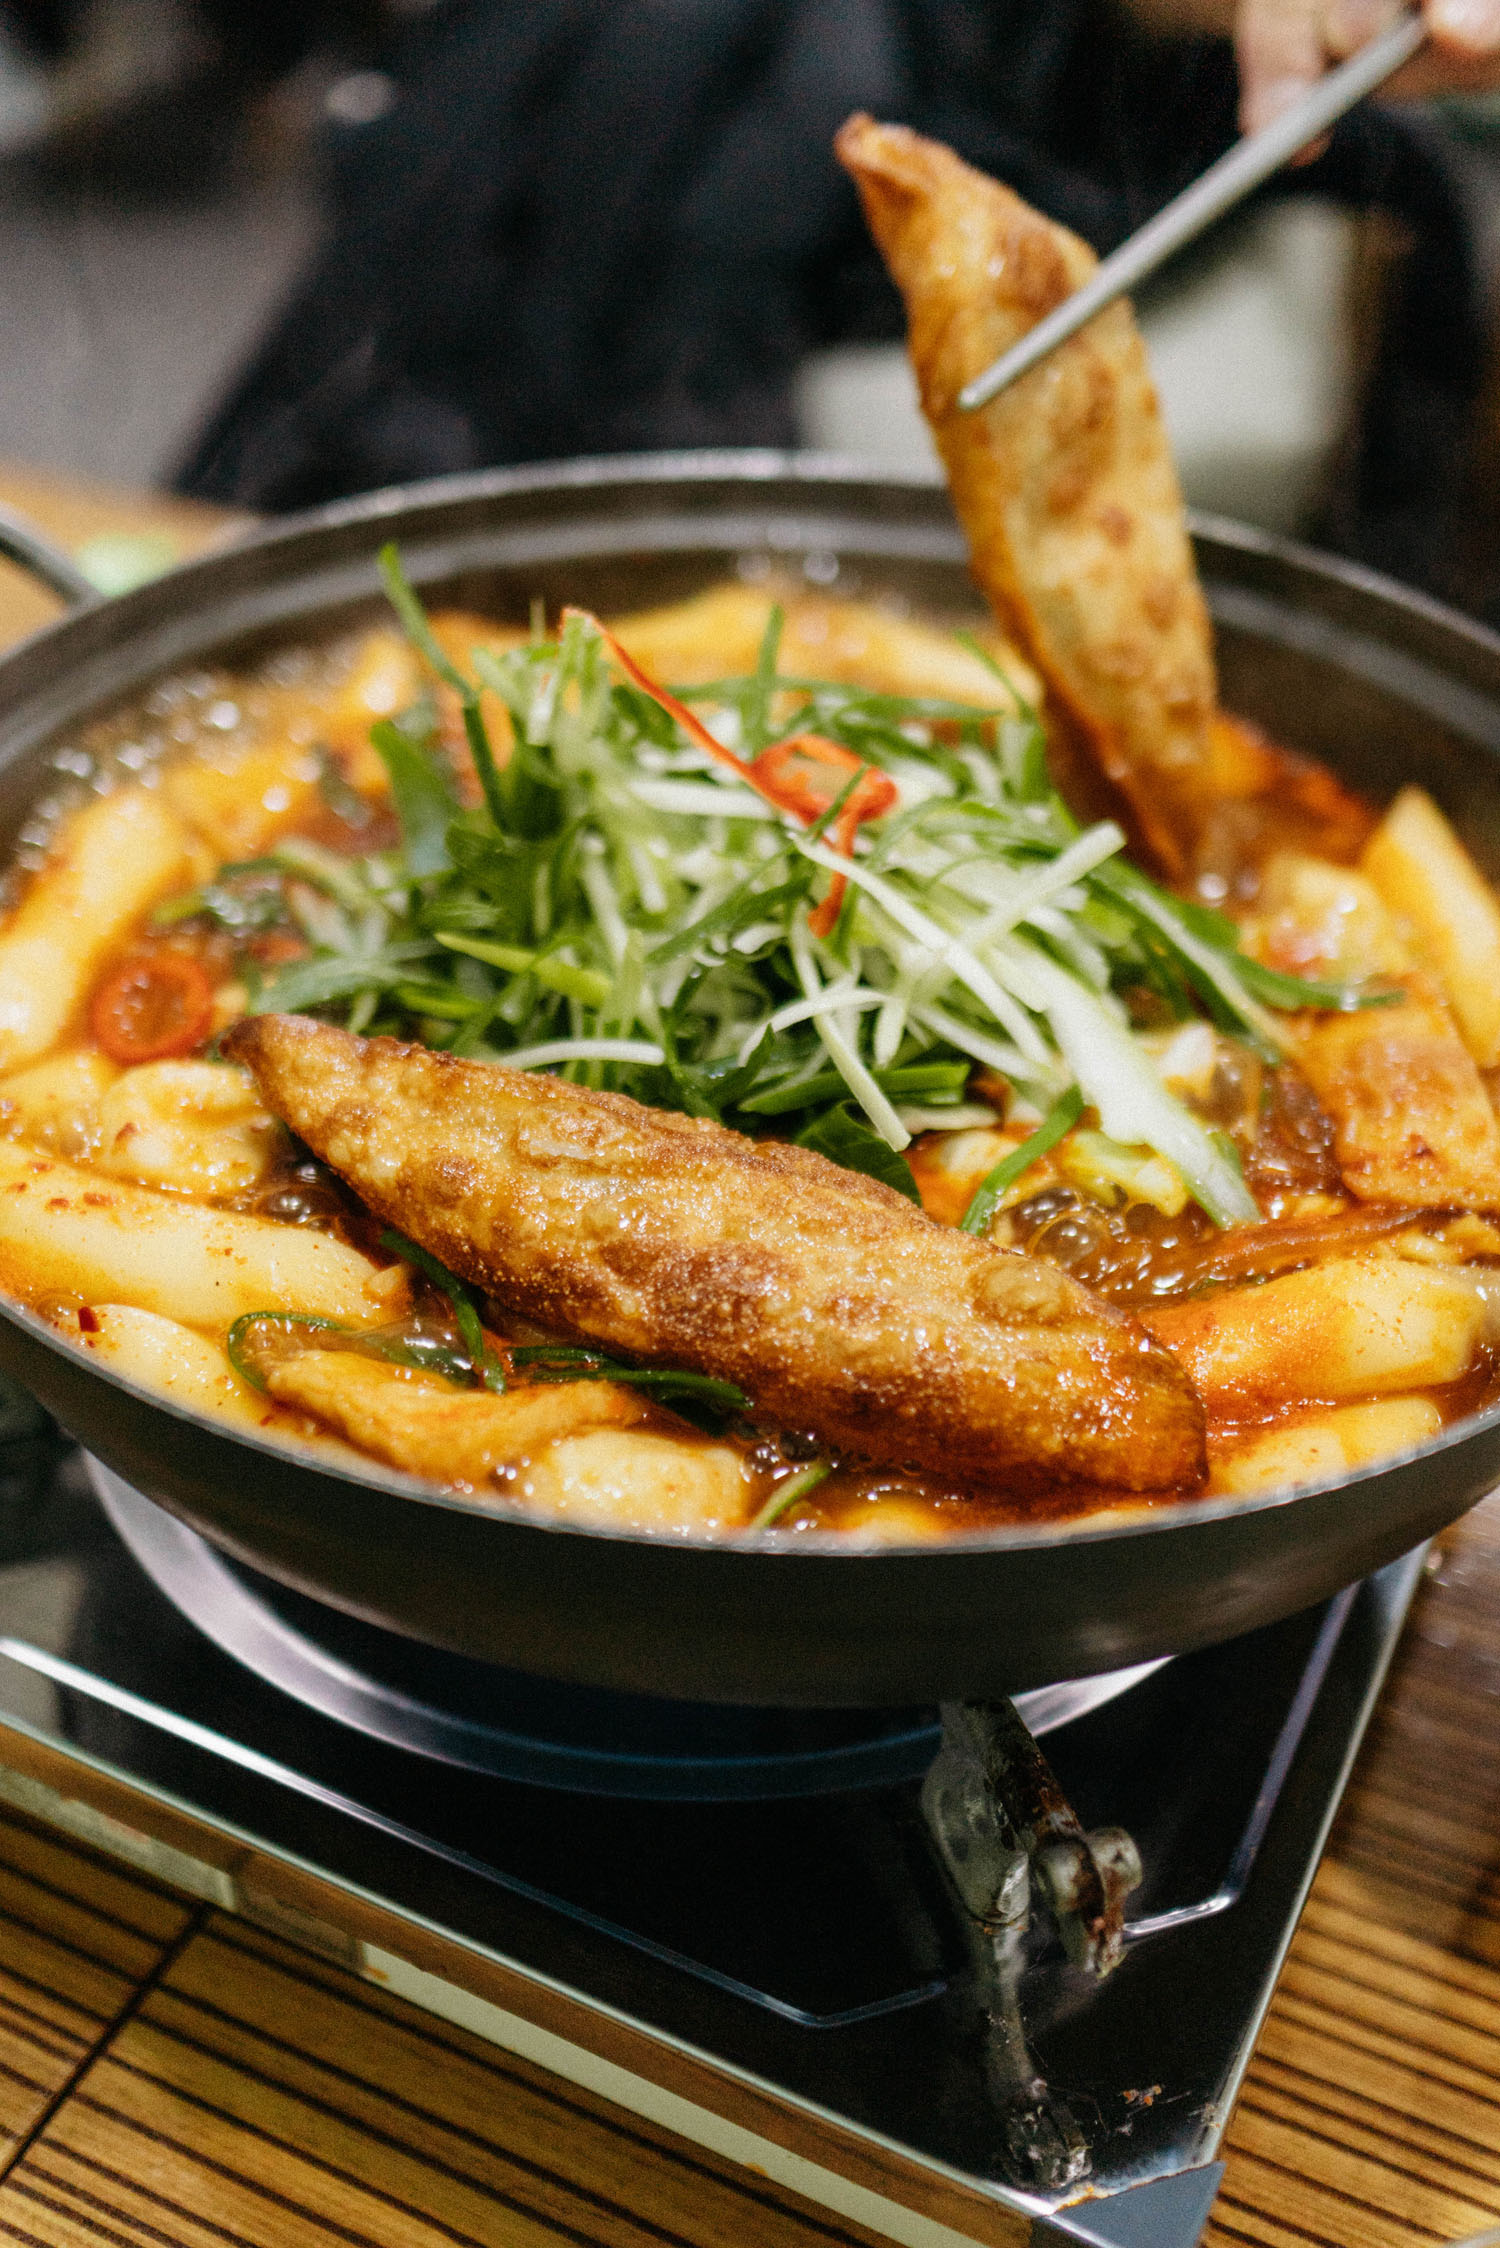 Spicy rice cakes at  반당